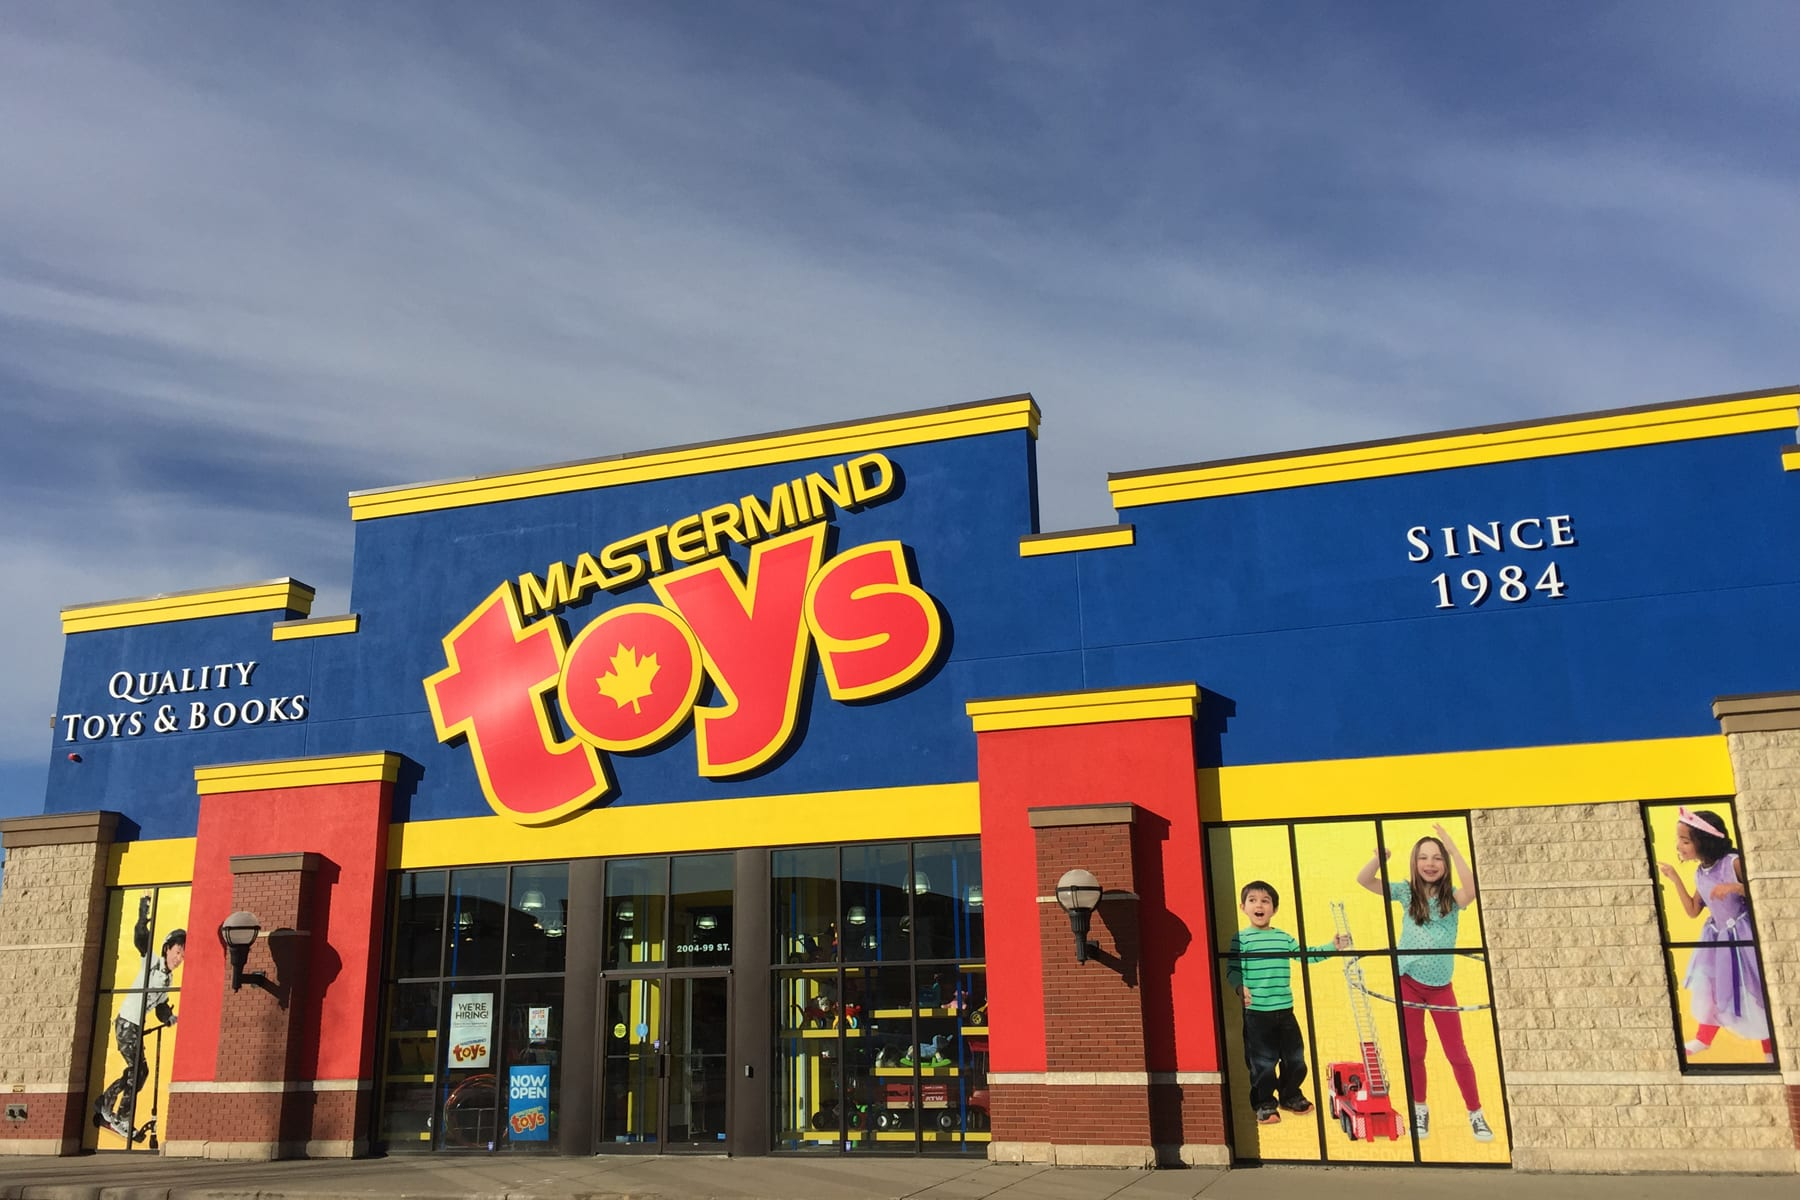 All mentioned Toys & babies, Mastermind Toys Grande Prairie stores listing has a contacts, phone number, location and opening and closing times. Click the name below to get Mastermind Toys Grande Prairie opening hours and for detailed information.